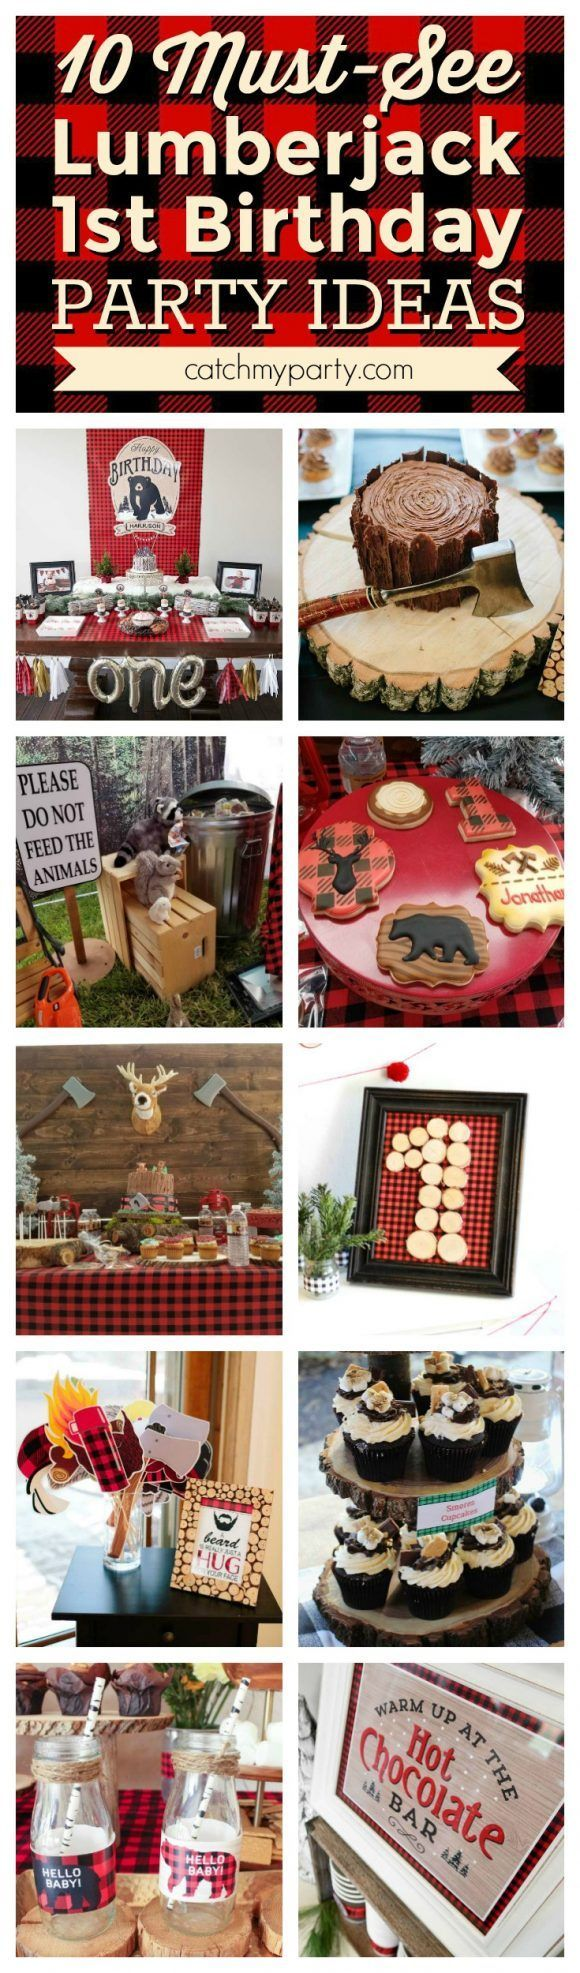 Lumberjack 1st bday party ideas